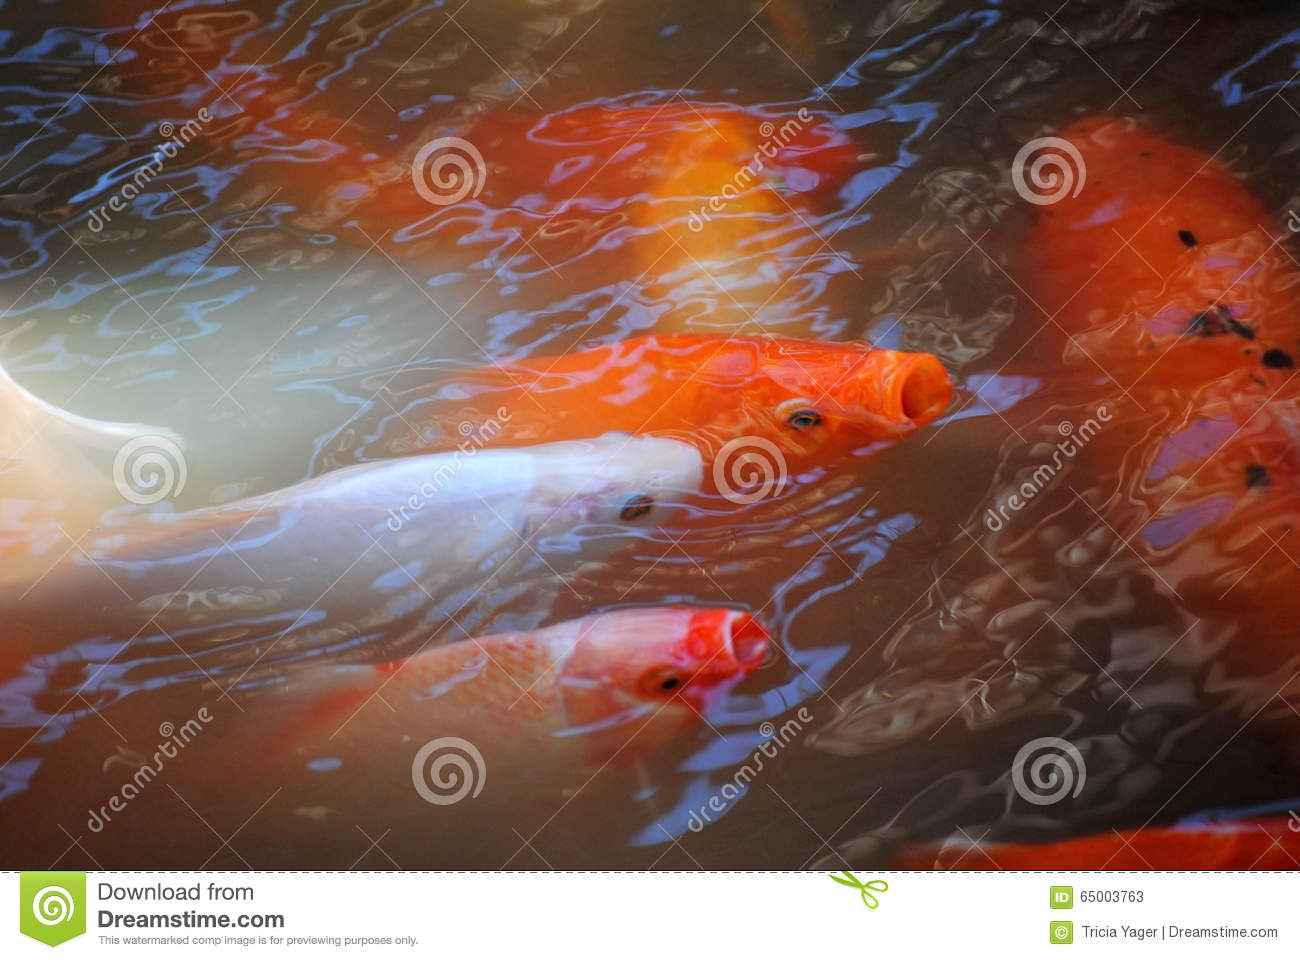 Orange and white koi fish stock image image of fish for Orange coy fish